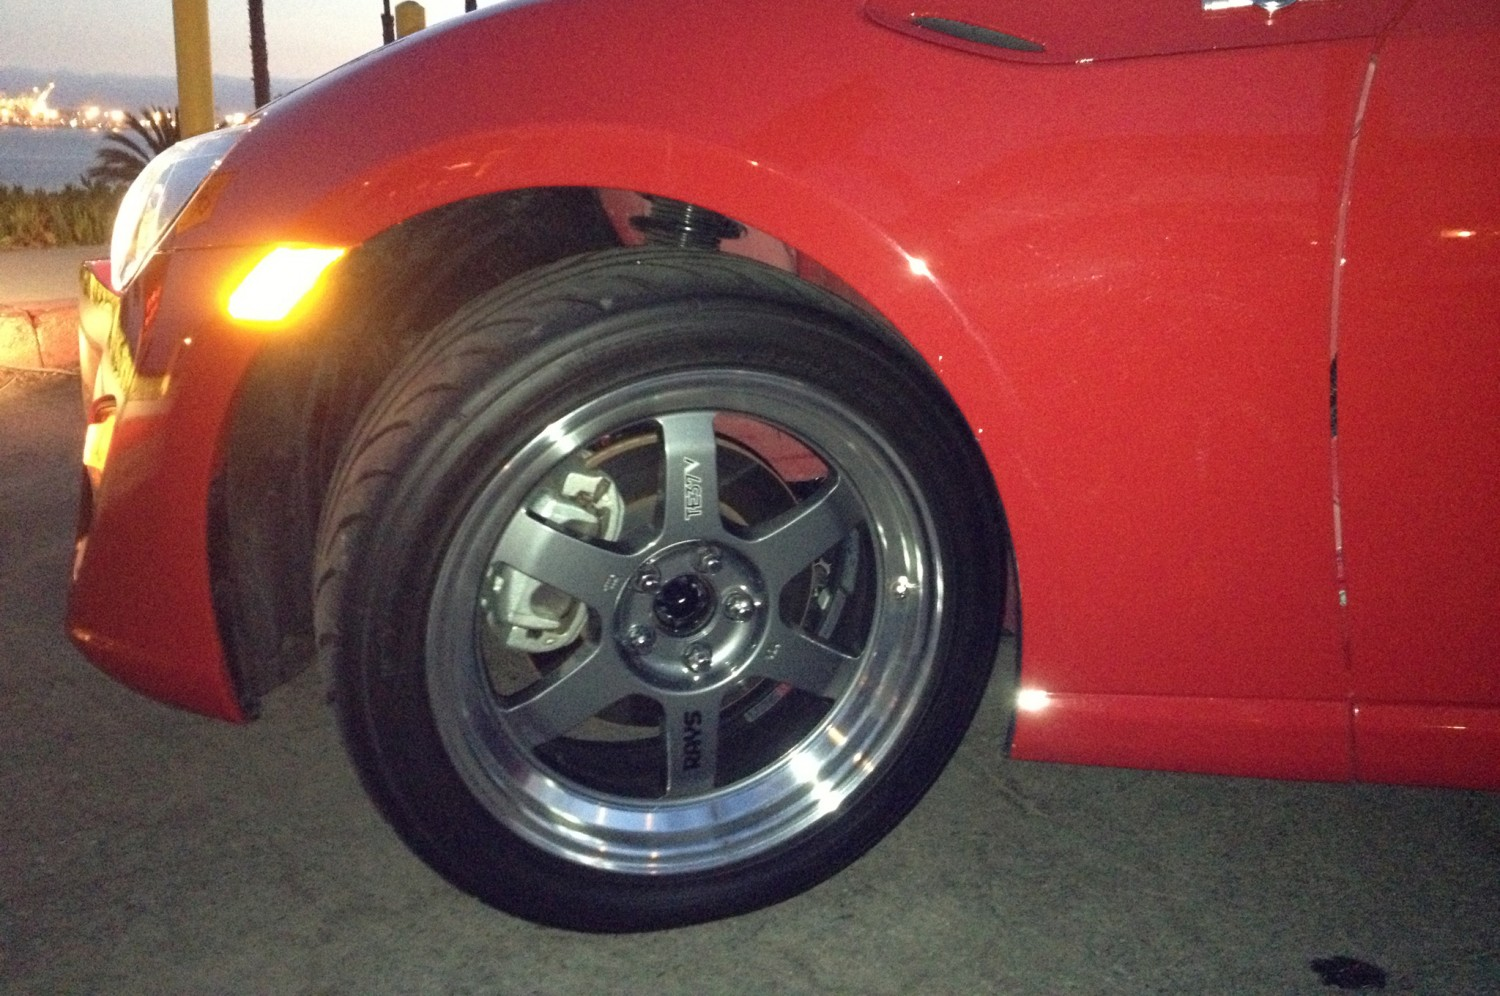 Scion FR-S wheels #2